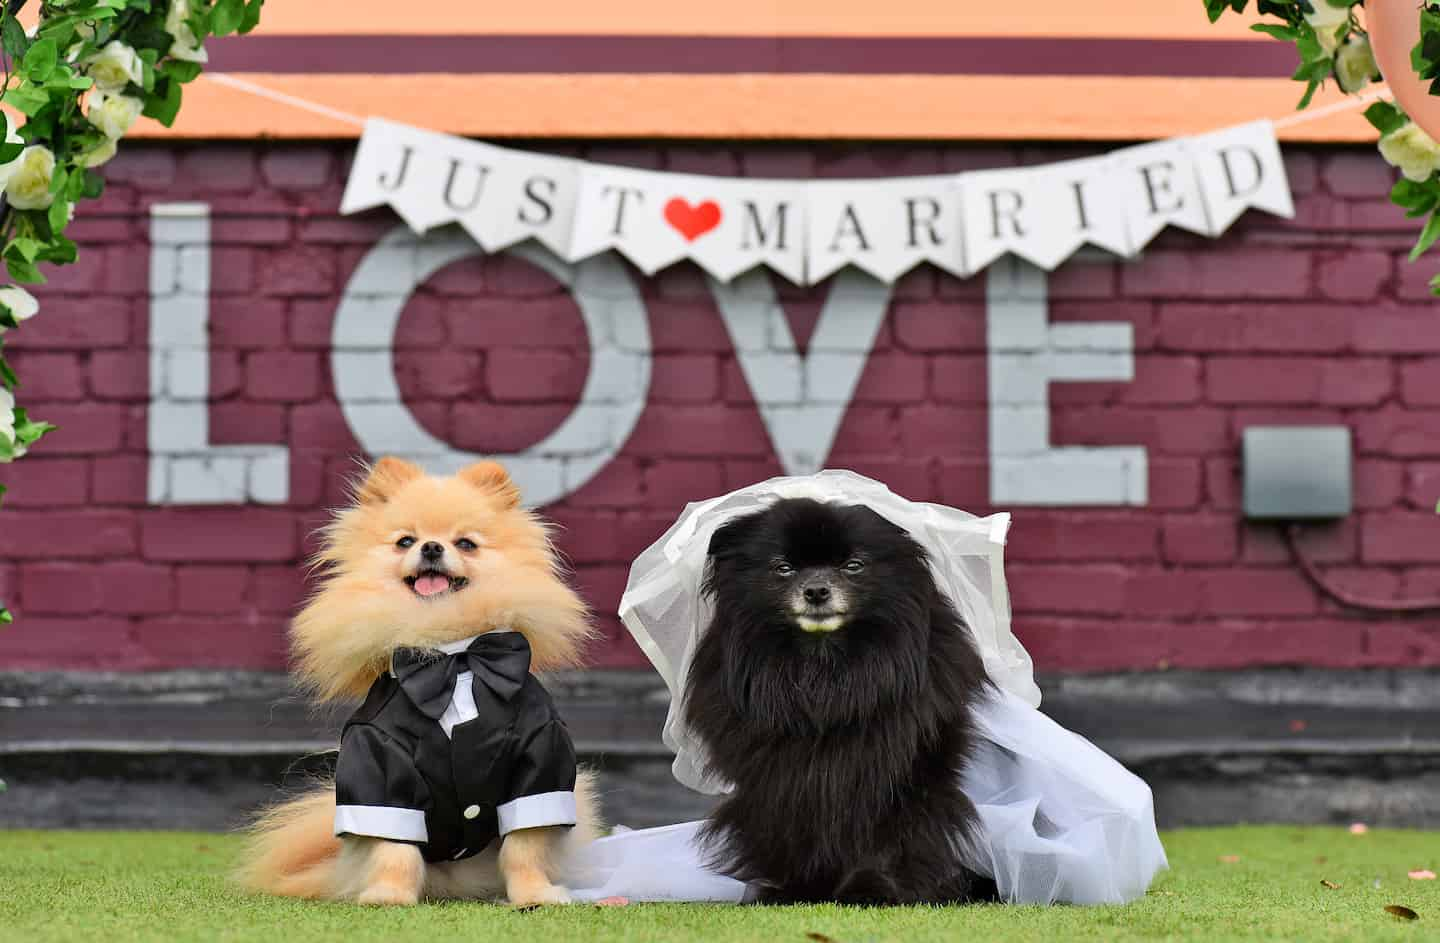 London Dog Wedding At The Rooftop Film Club Wooftop Wedding Service 1